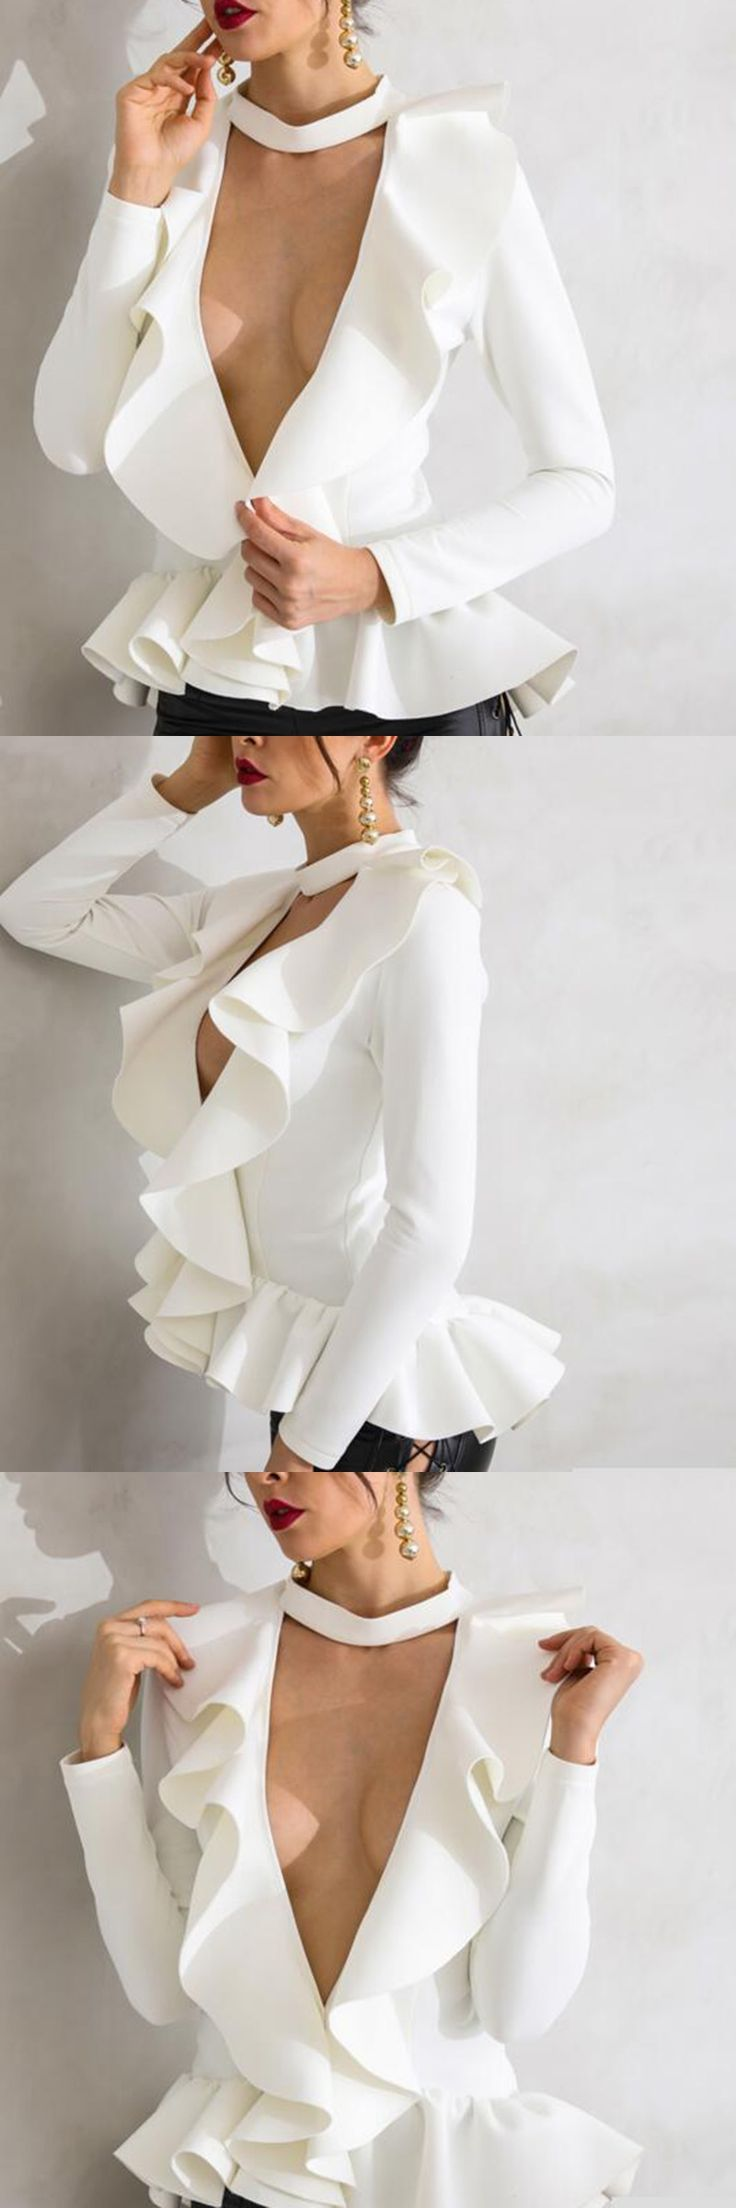 Women Long Sleeve V-Neck White Suit Night Club Party Wear Coat 2018 New Designer Fashion Sexy Jaket For Ladies Drop Shipping Hot